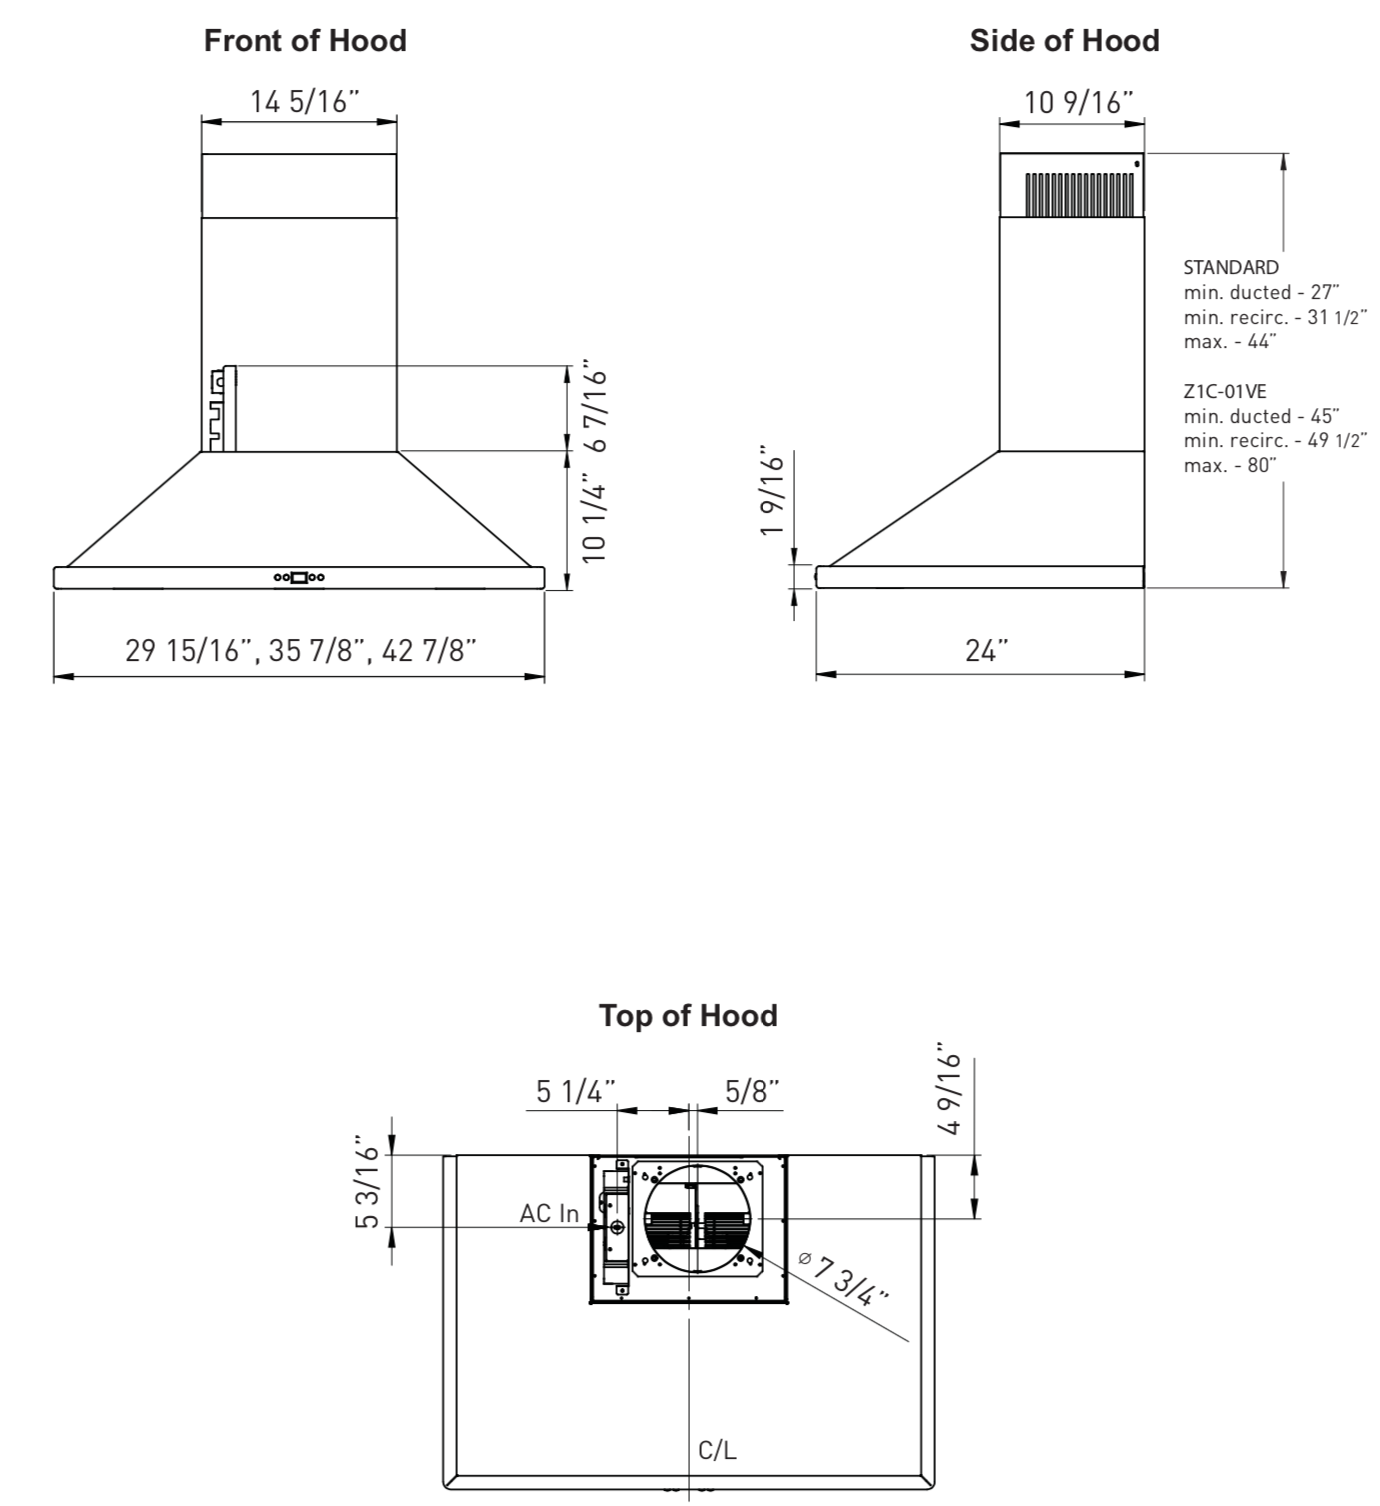 Best way to route power feed to pyramid range hood-screen-shot-2019-03-03-11.20.20-am.png